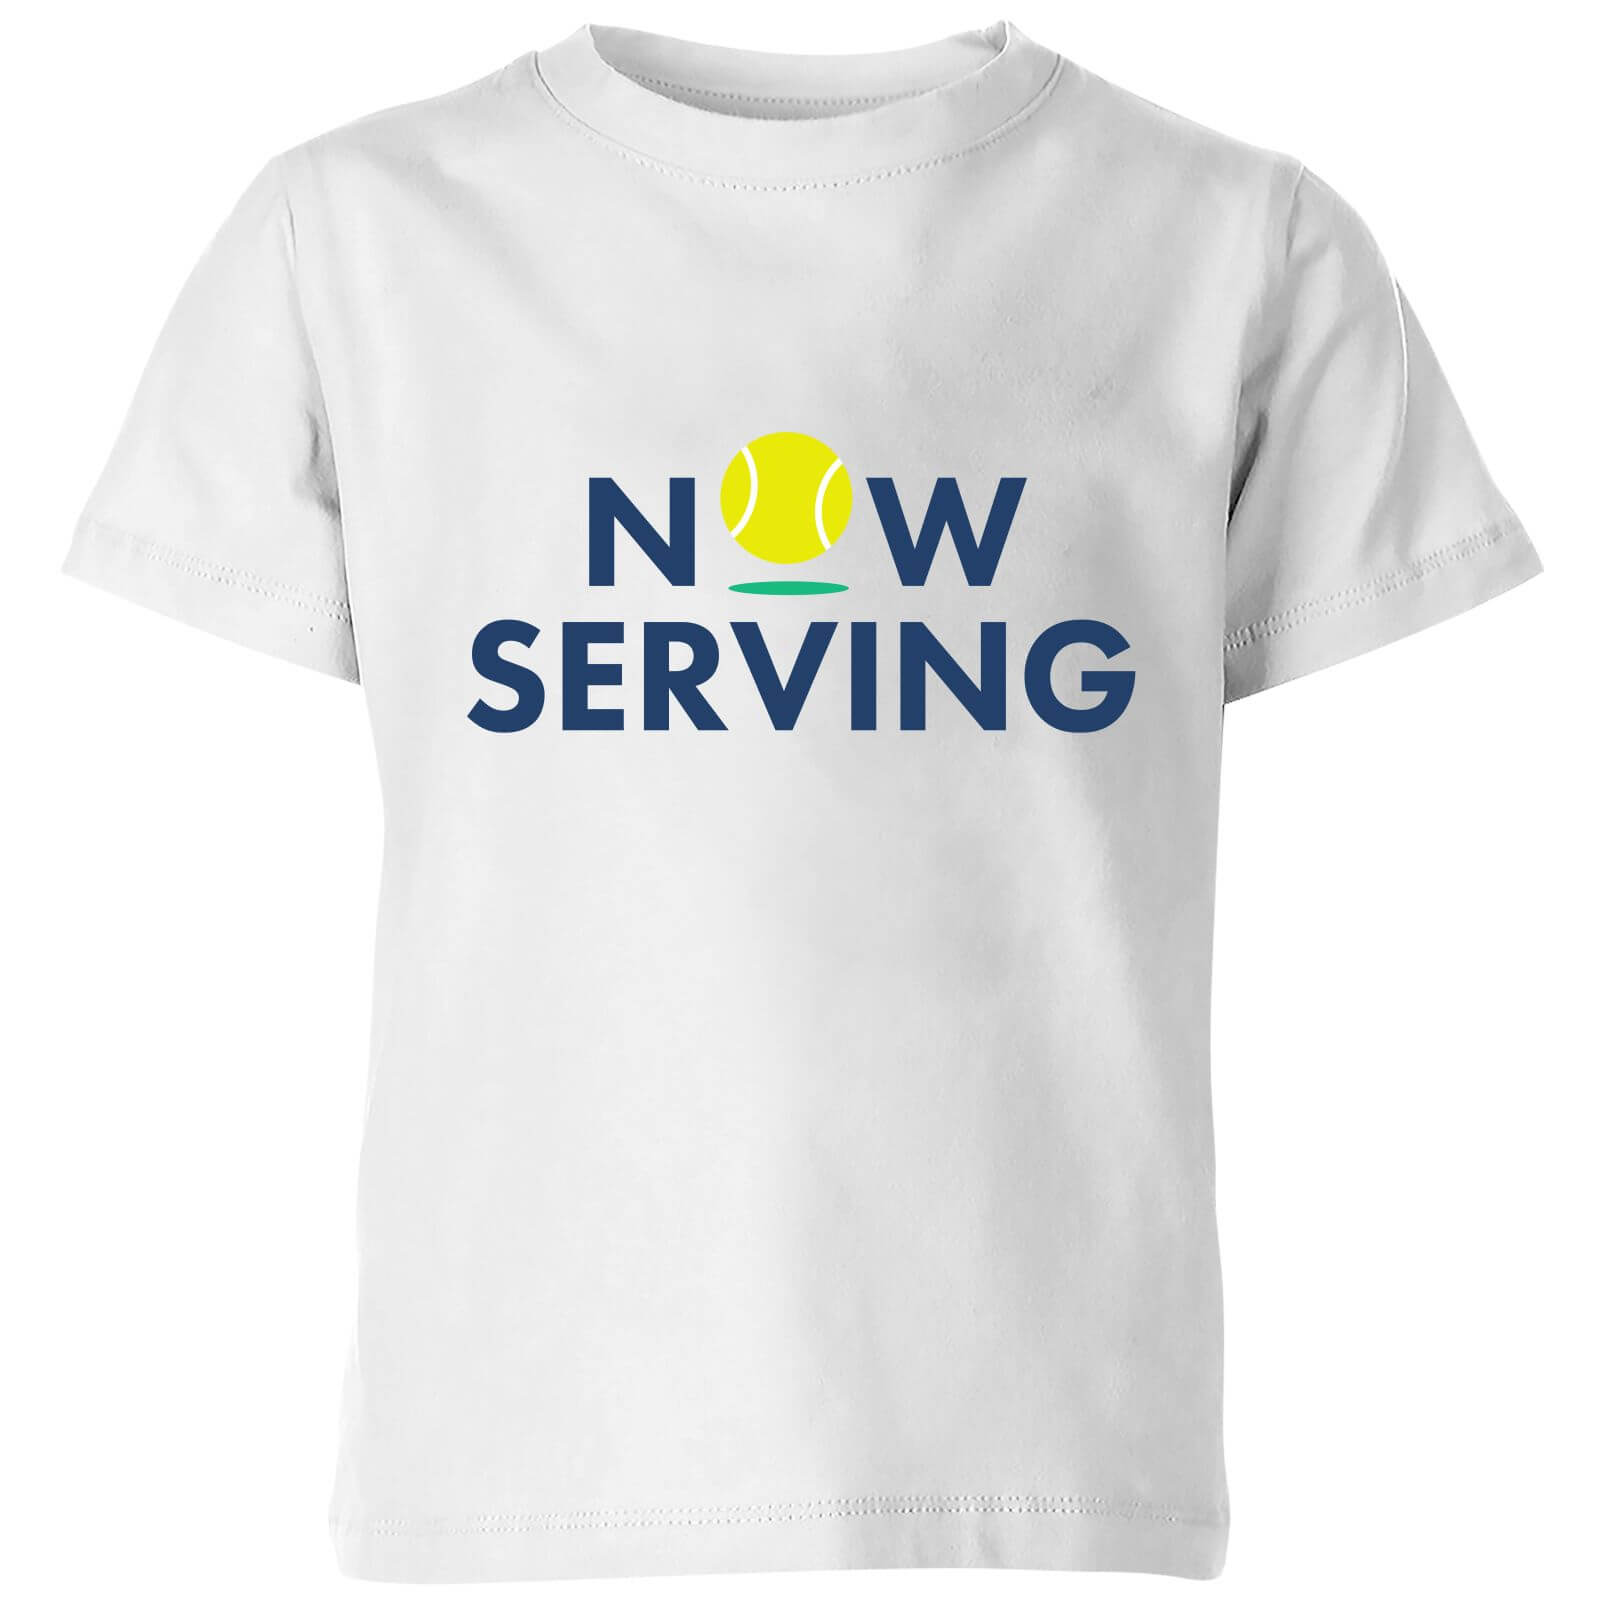 Now Serving Kids